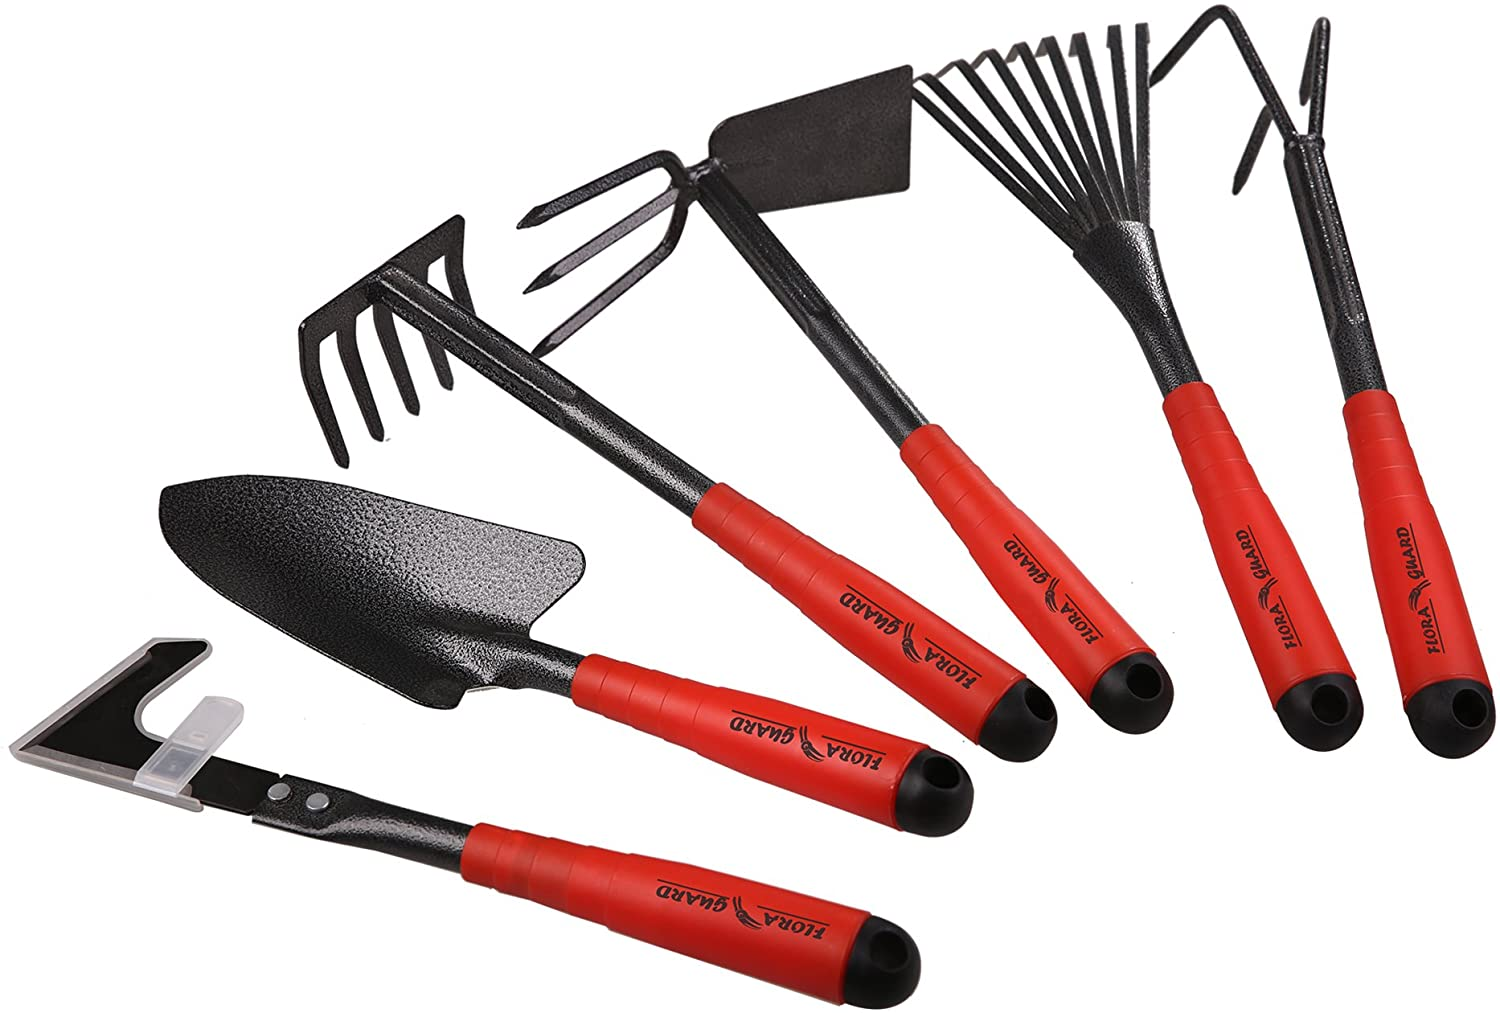 FLORA GUARD 6 Piece Garden Tool Sets - Including Trowel, 5-Teeth rake, 9-Teeth Leaf rake, Double Hoe 3 prongs, Cultivator, Weeder, Gardening Hand Tools with High Carbon Steel Heads : Garden & Outdoor